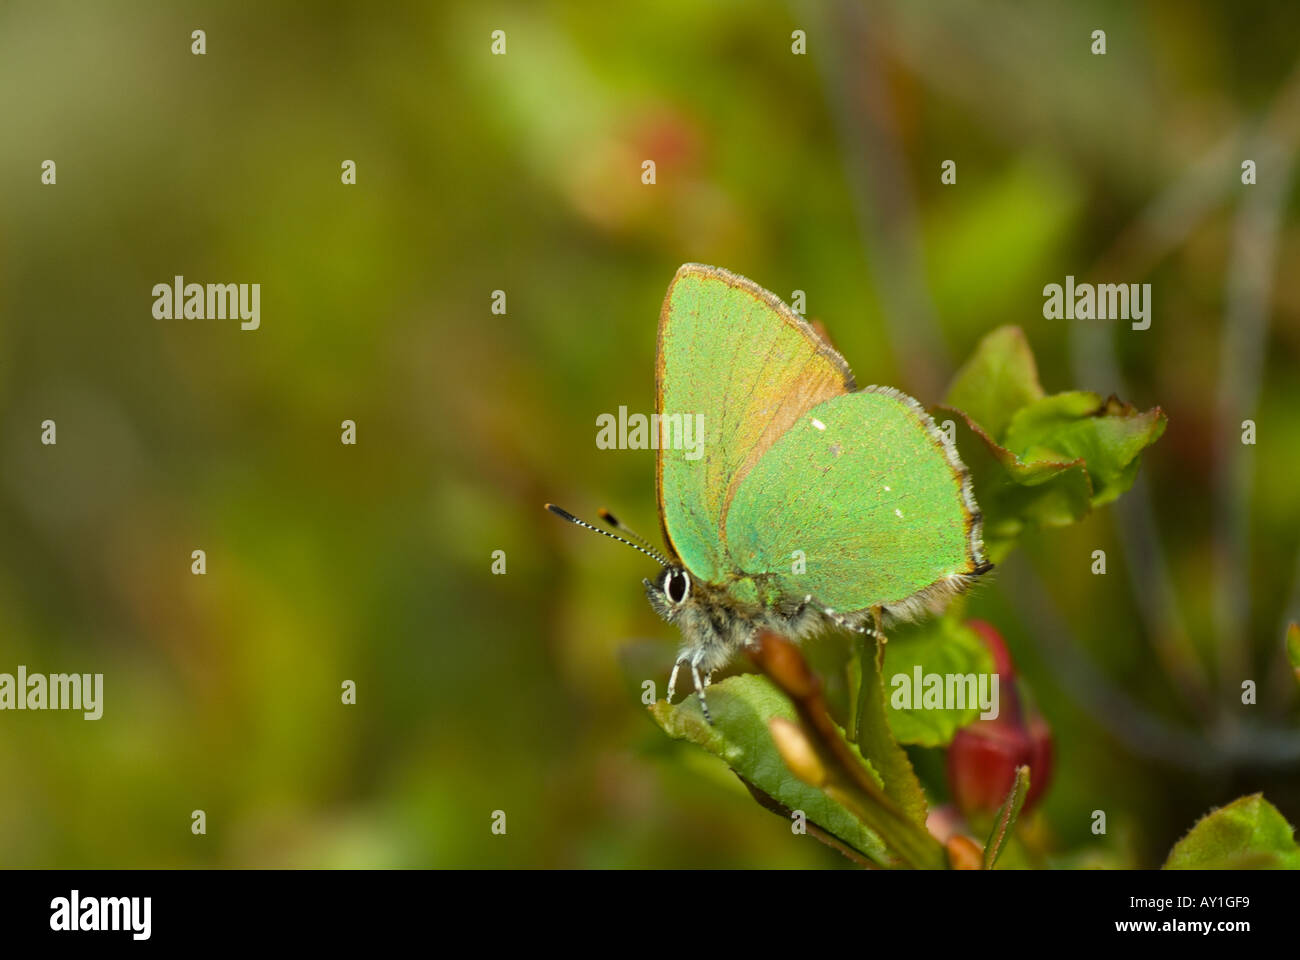 green-hairstreak-callophrys-rubi-AY1GF9.